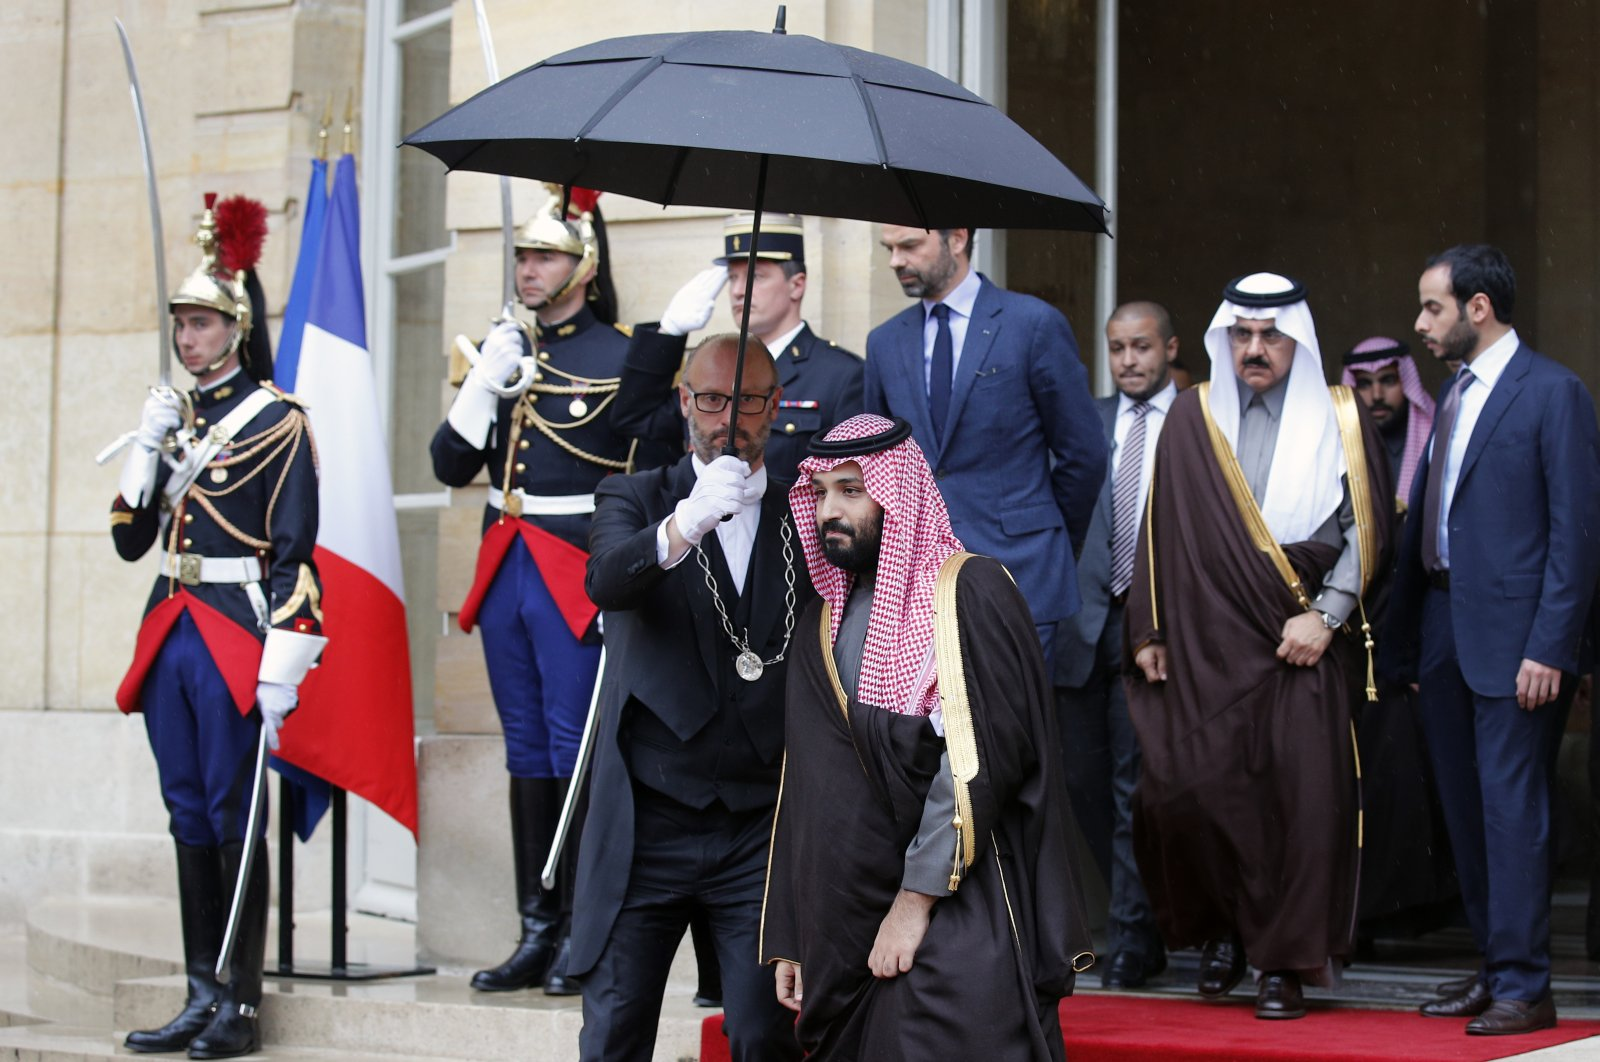 Saudi Arabia's Crown Prince M. bin Salman, center, walks out after his meeting with then-French Prime Minister Edouard Philippe, center back, in Paris, Monday April 9, 2018. (AP File Photo)